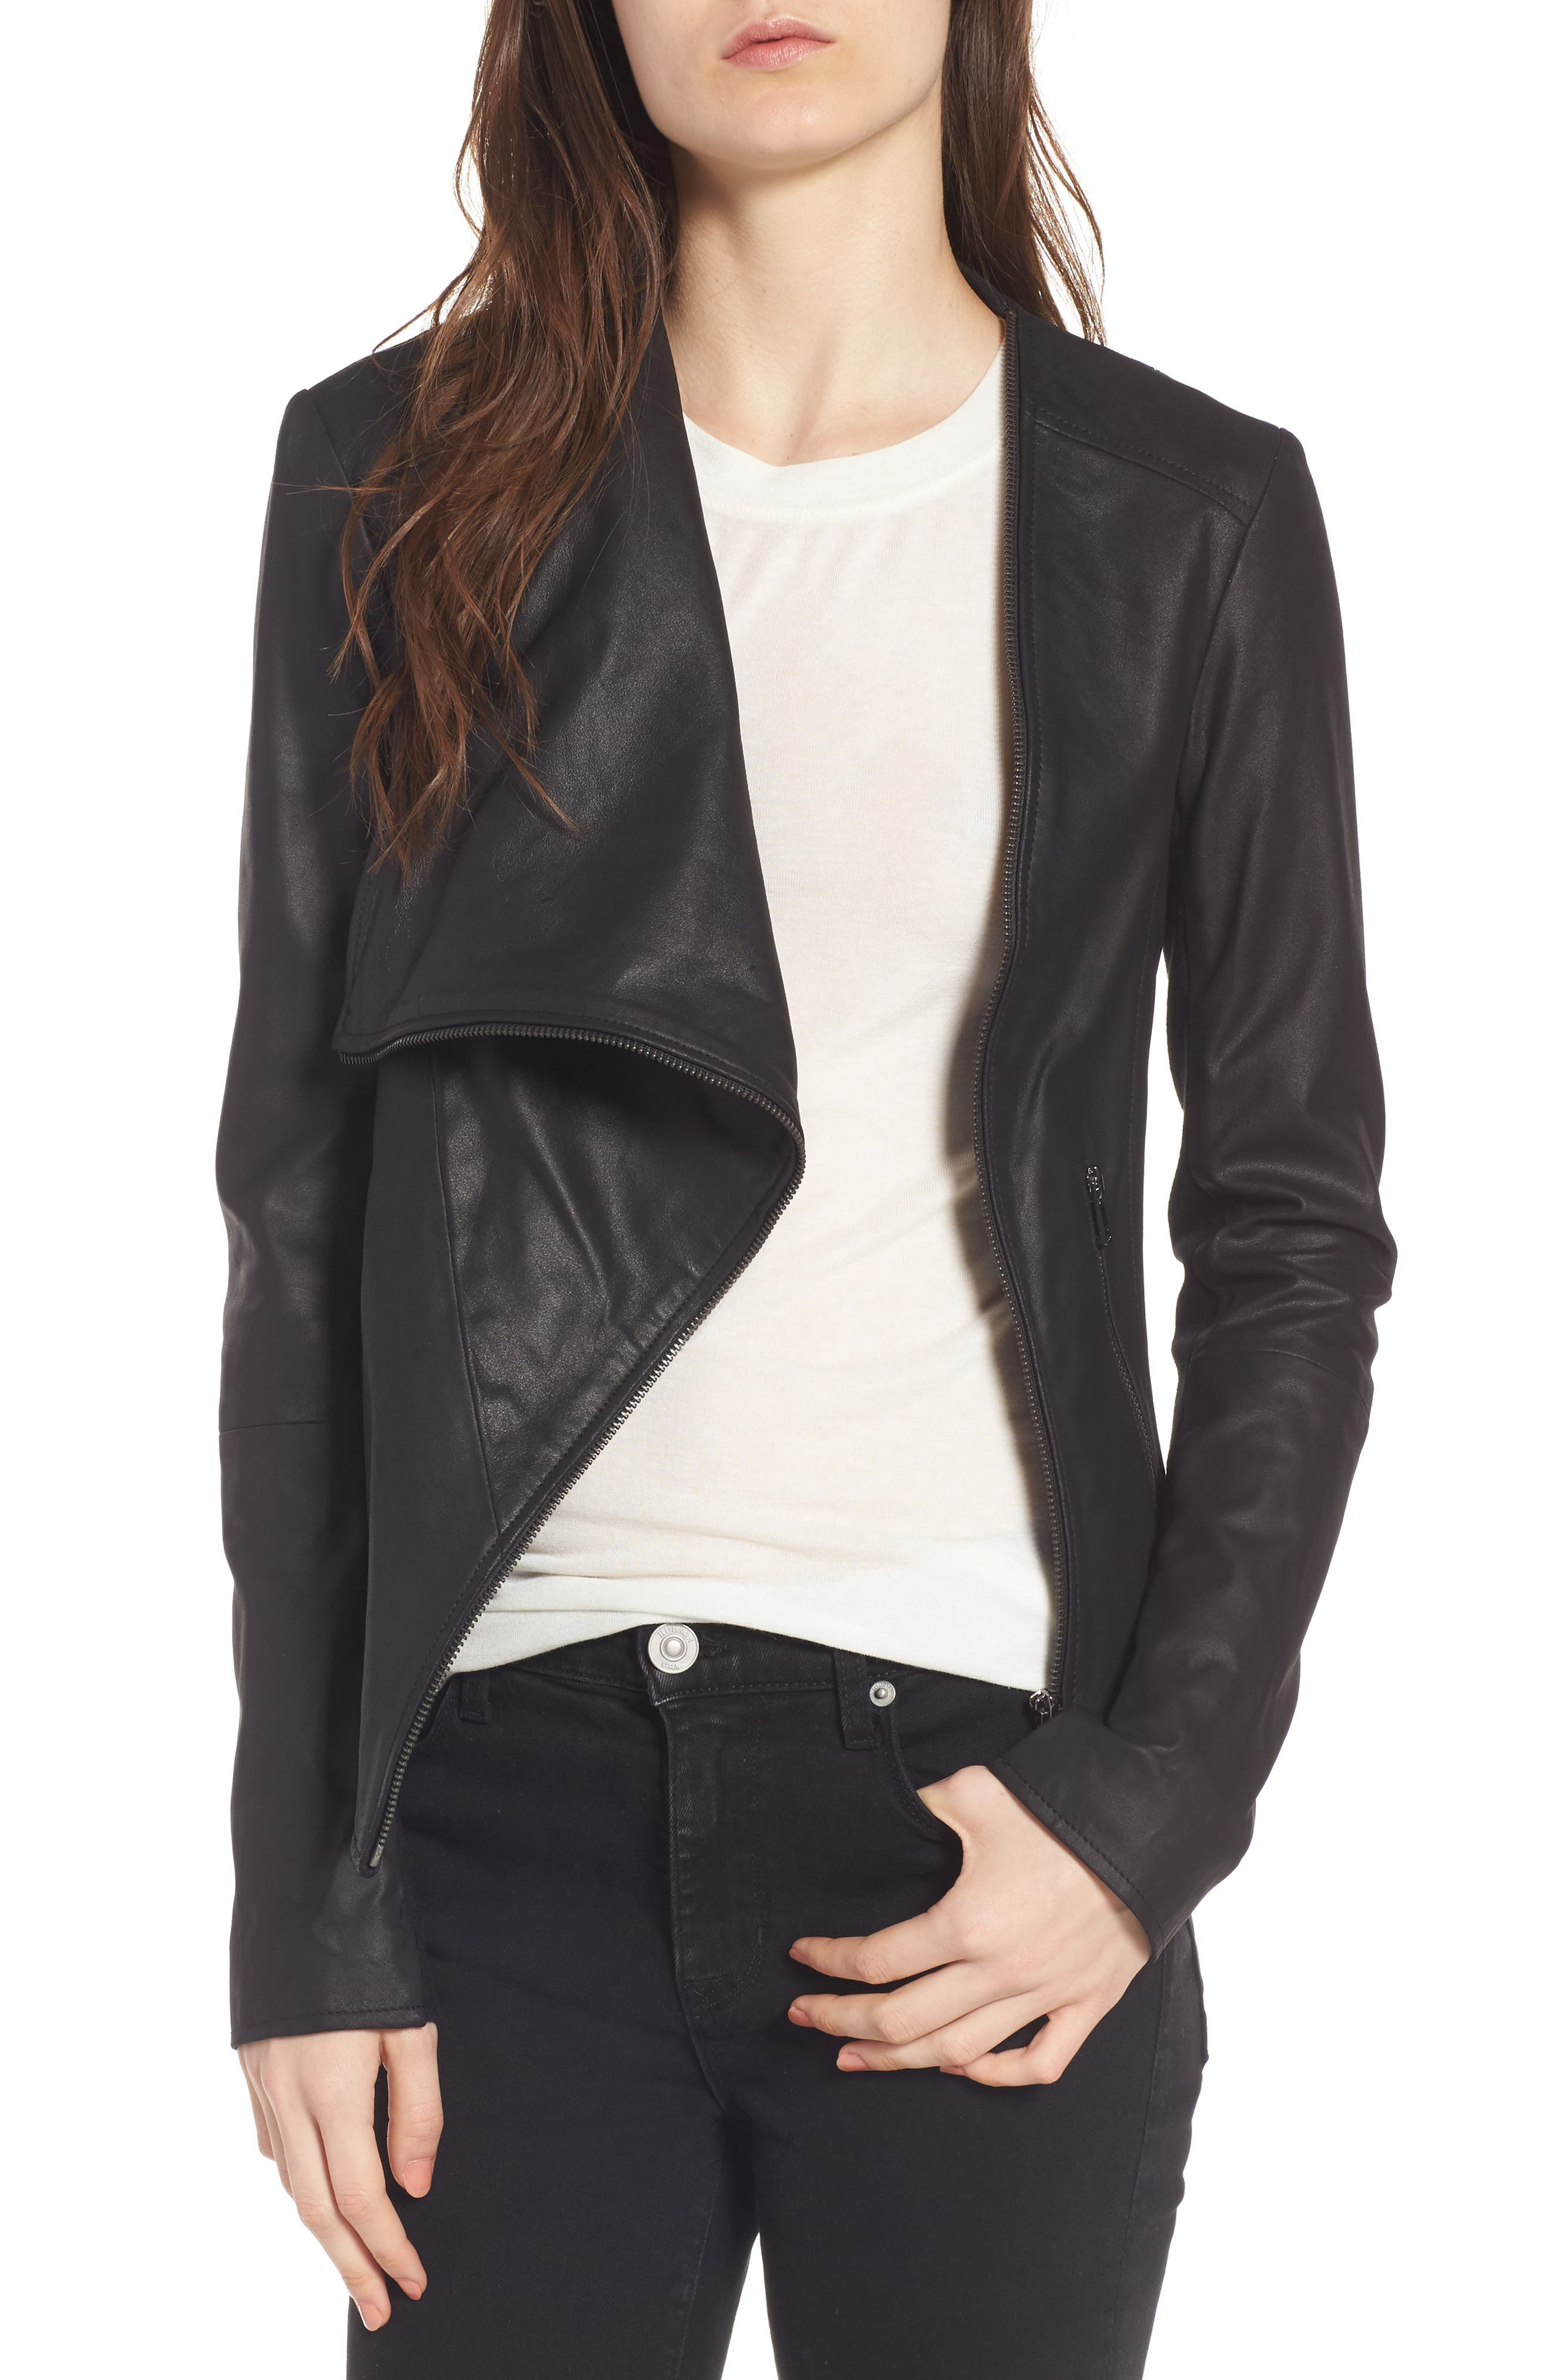 Cascade Leather Jacket,                             Main thumbnail 1, color,                             001